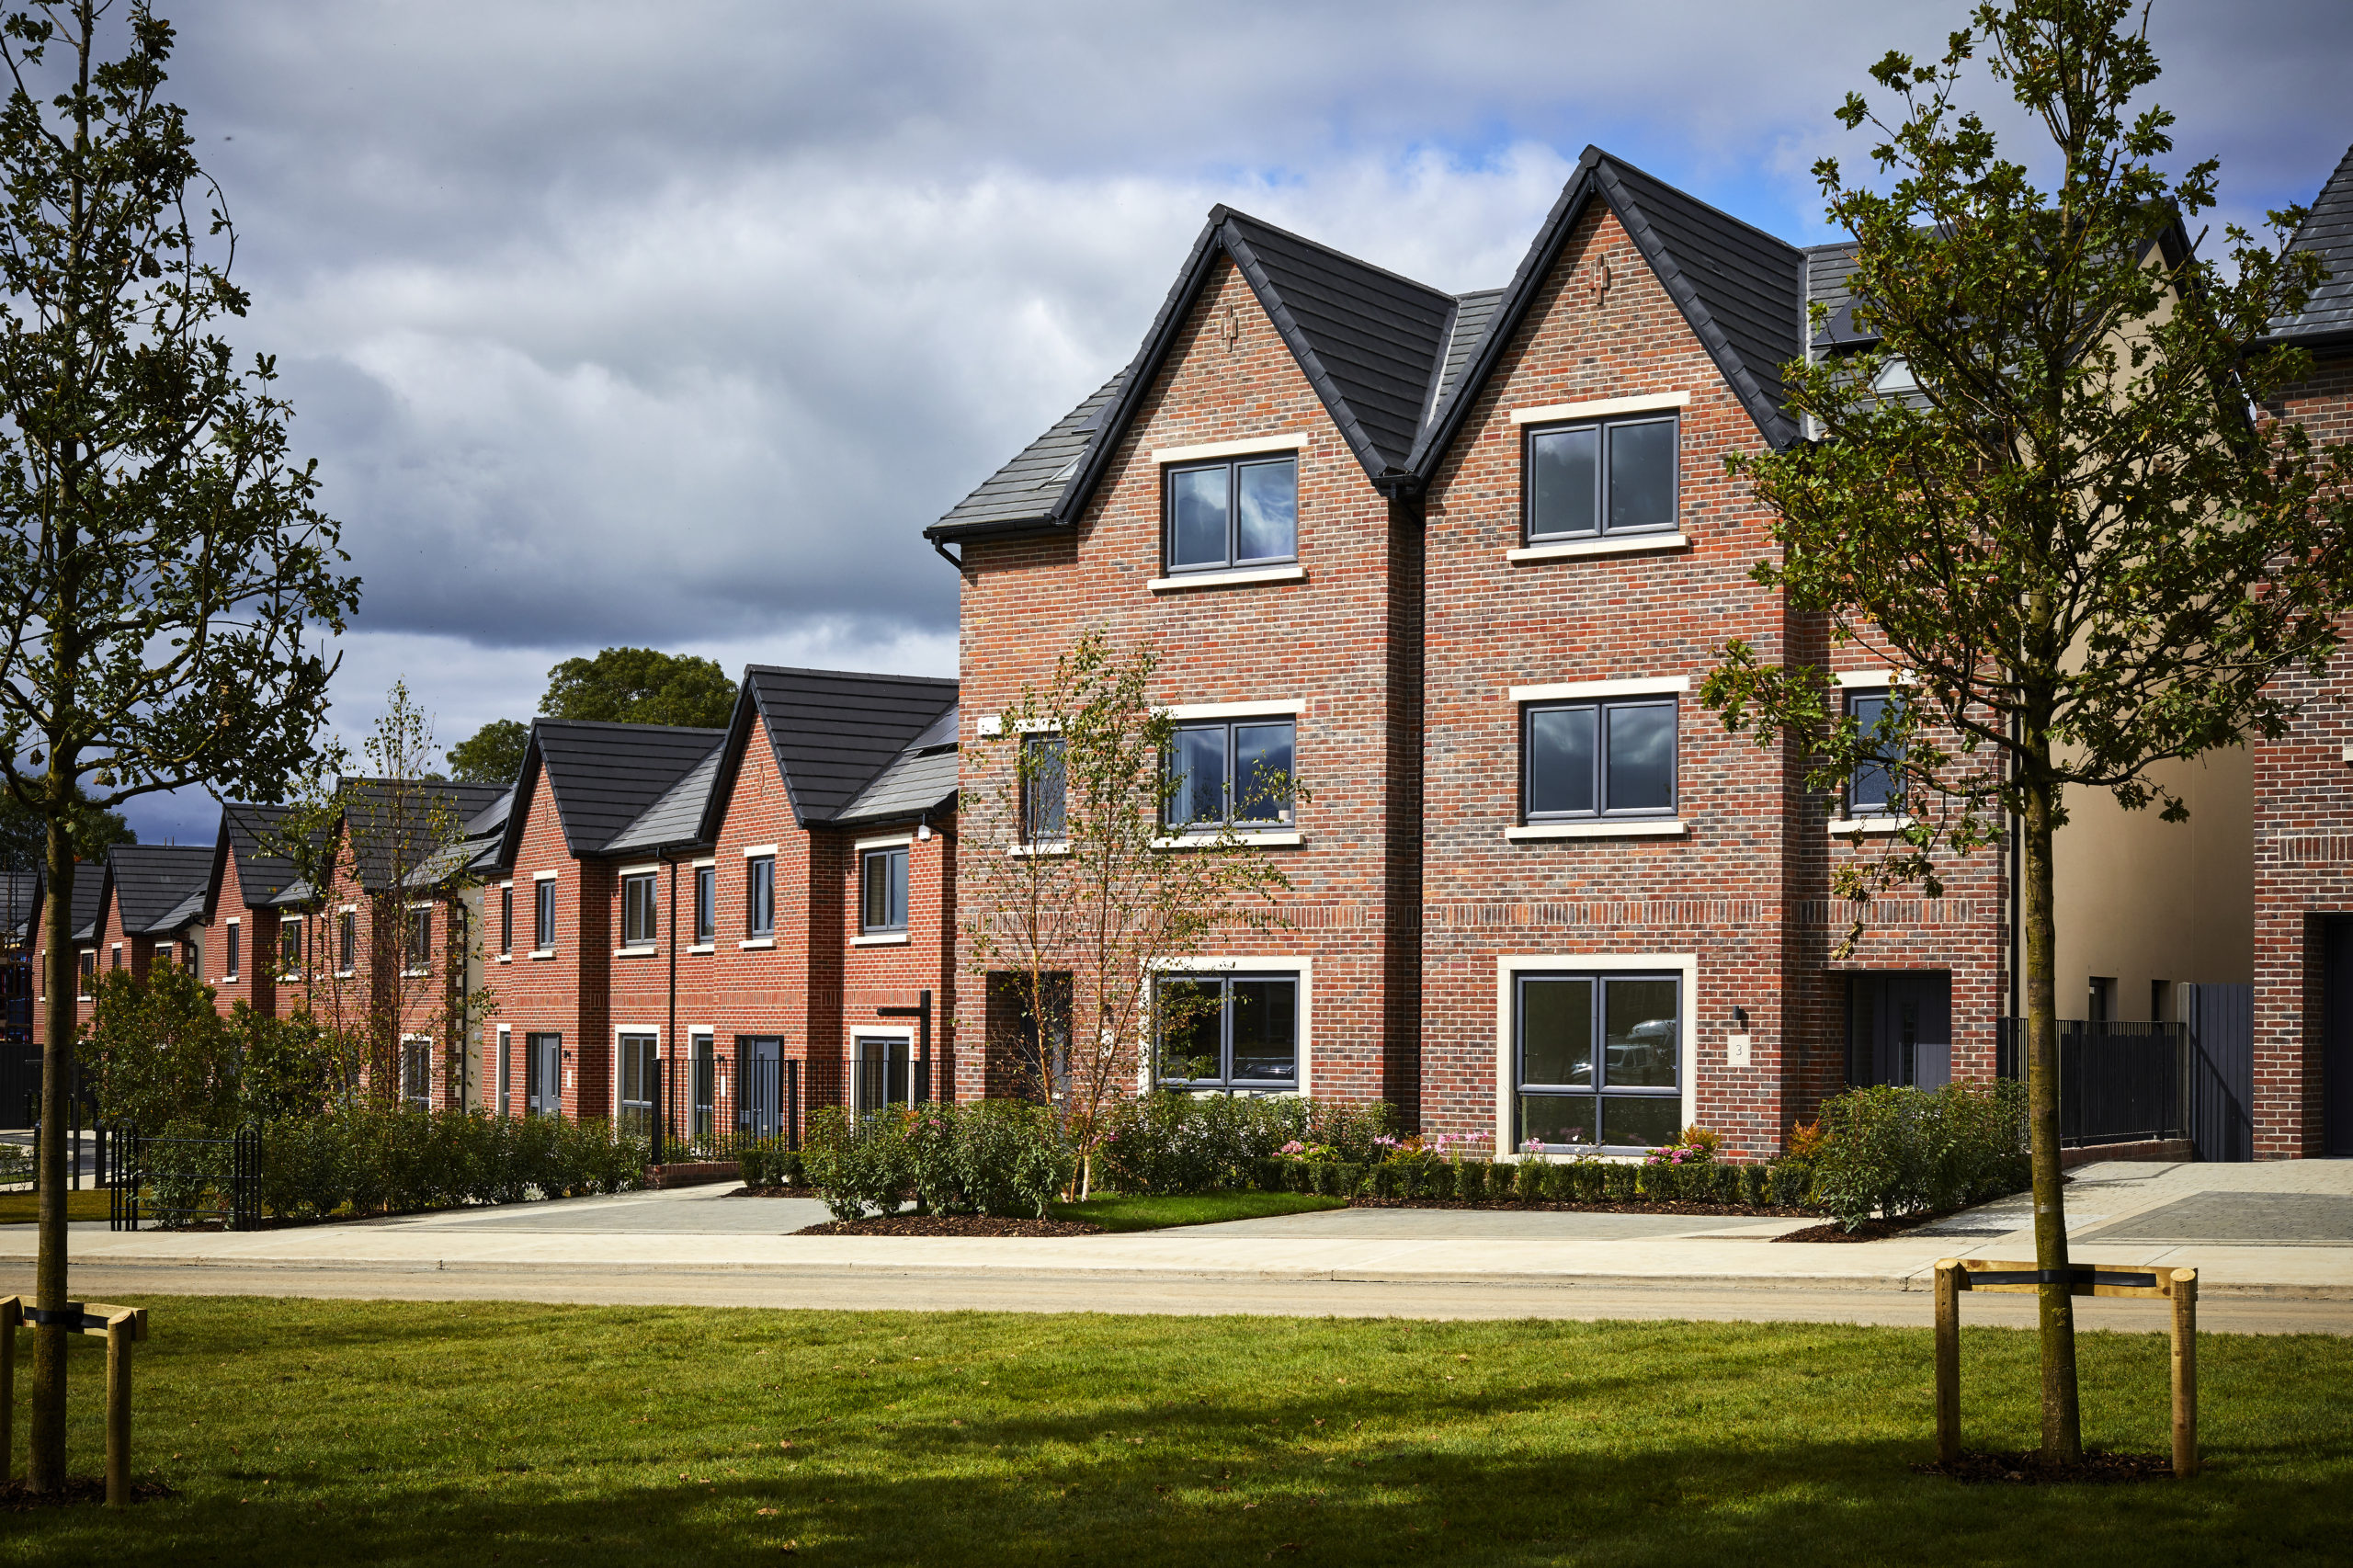 Cairn PLC launches new phase of   A3 rated, 3 and 4 bedroom homes  at Mariavilla, Maynooth